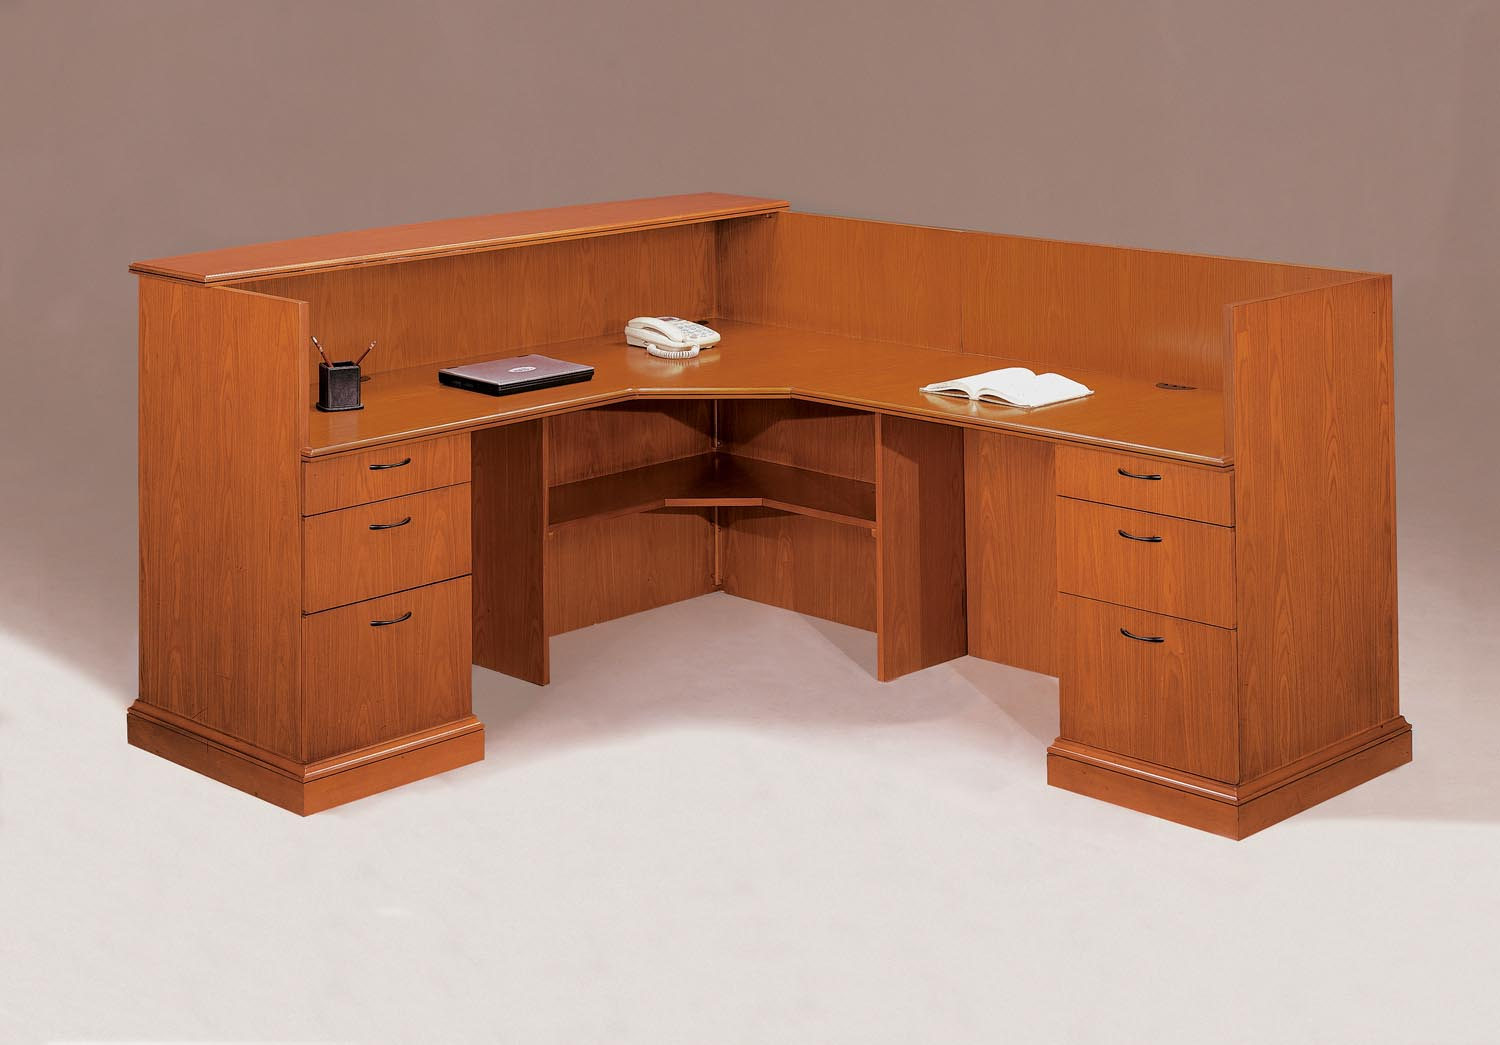 table desks office. Executive Concepts Office Desk Table Desks R